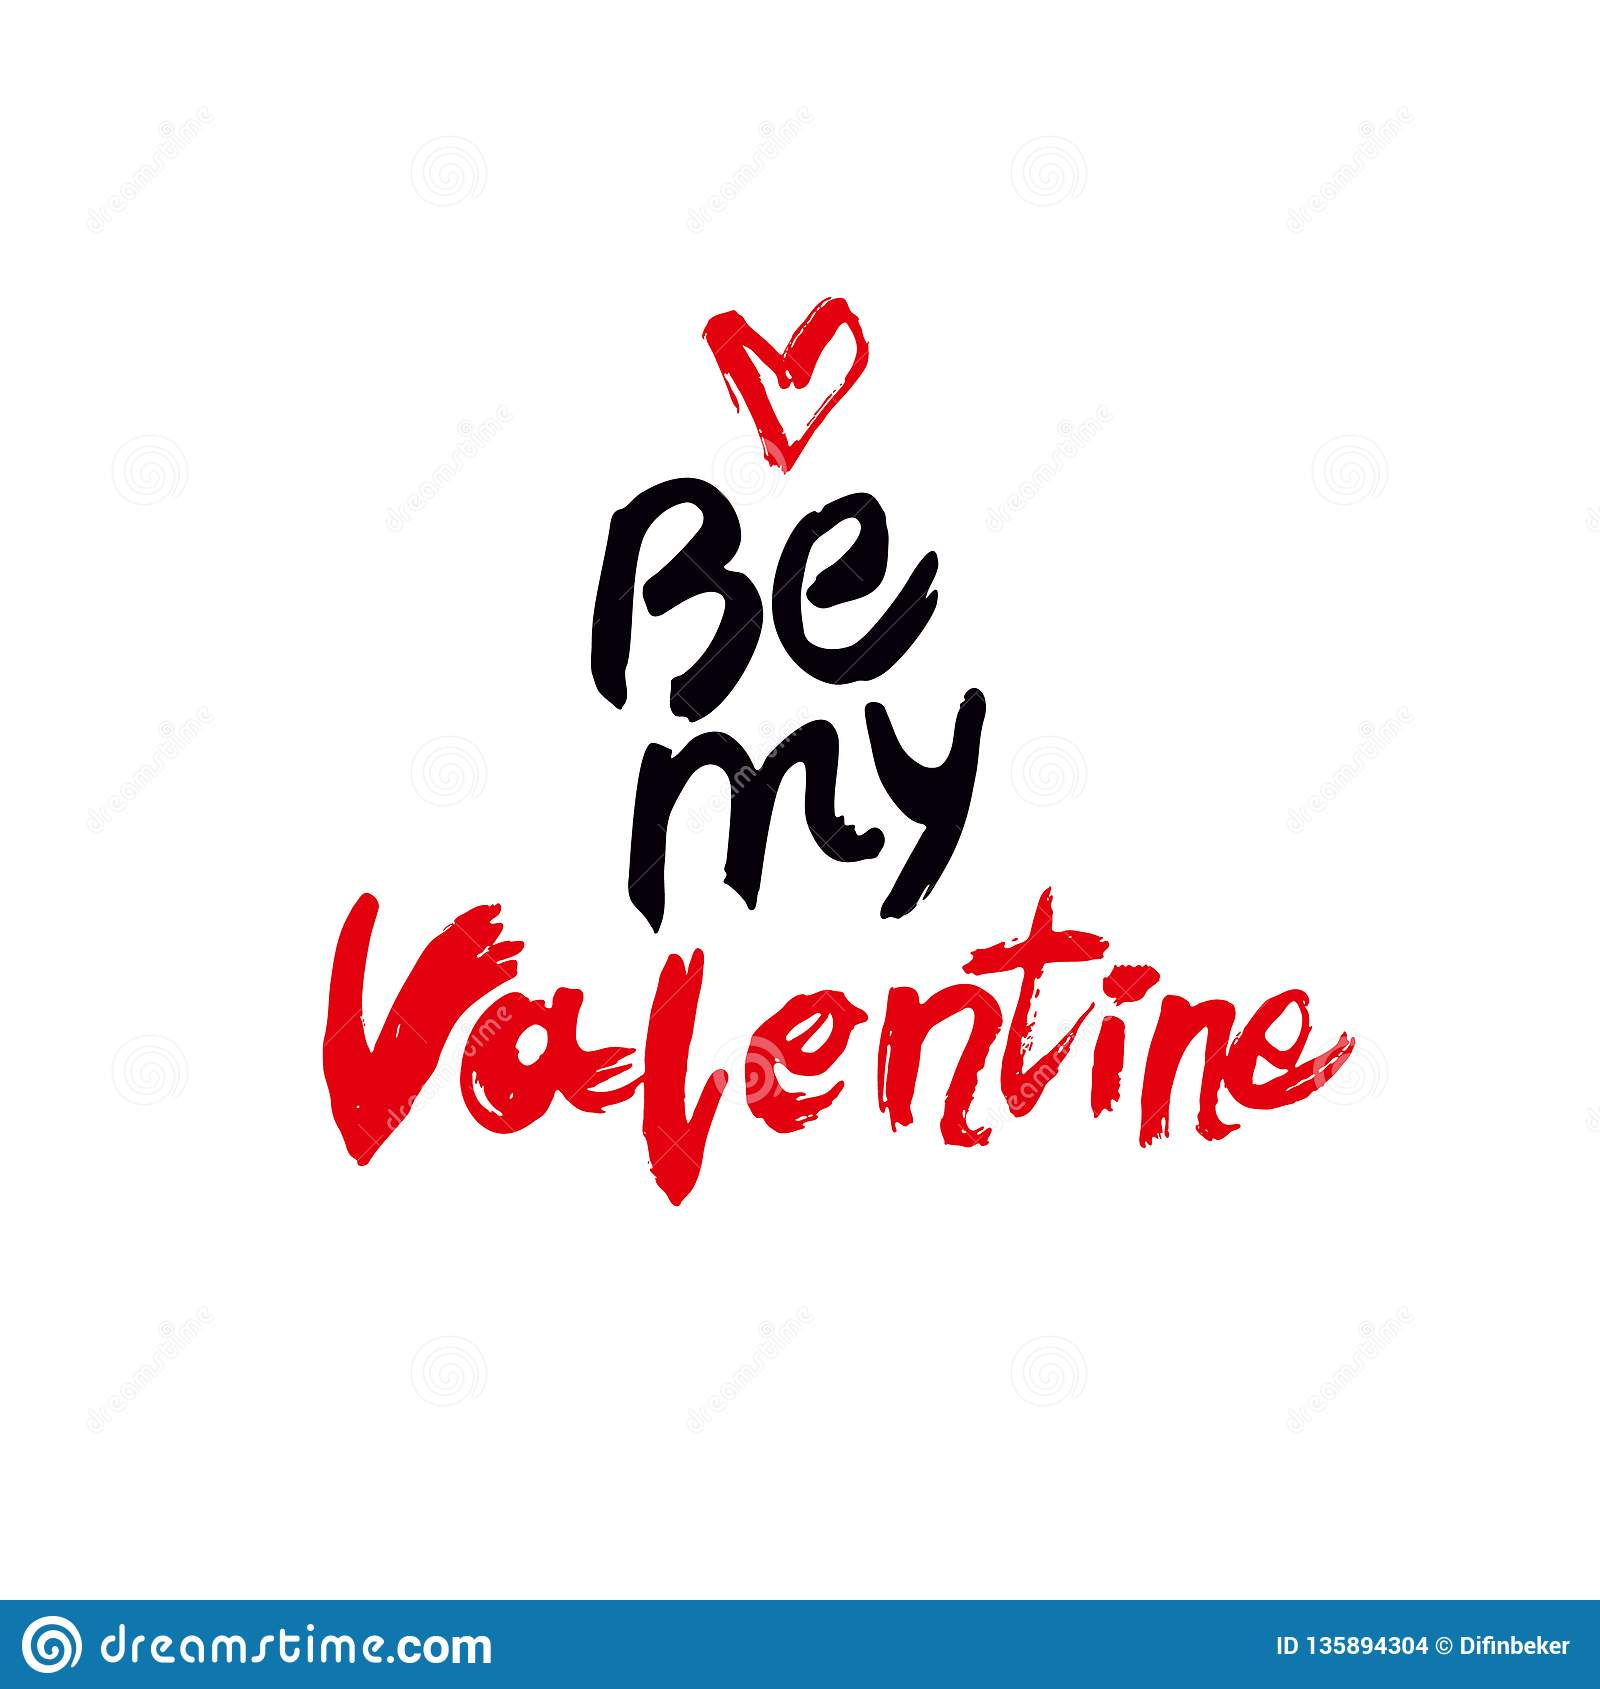 Be my Valentine handwritten lettering. Black and red calligraphic text with red heart on white background.